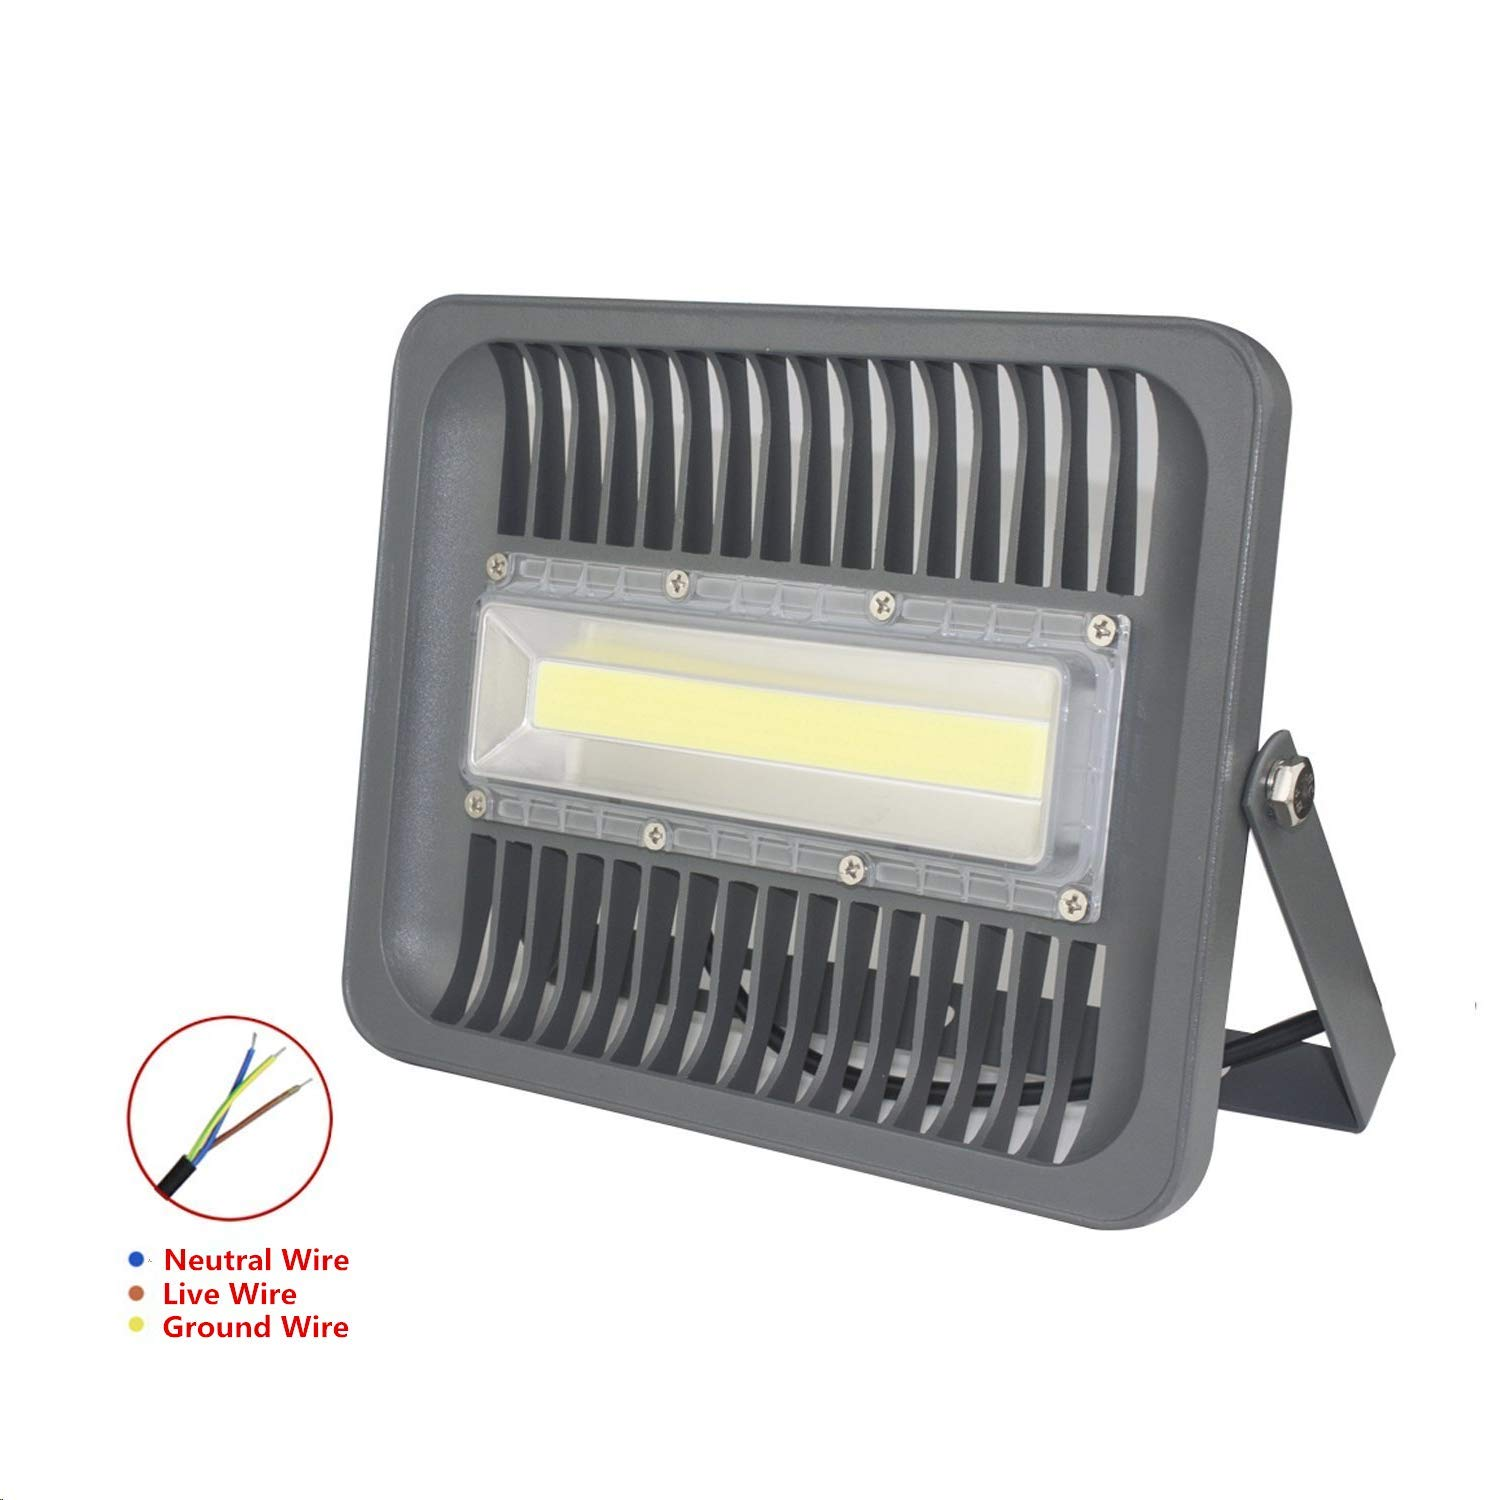 Asign 100w Led Cob Outdoor Flood Lights Super Bright Work Wiring A House 10000lm 500w Halogen Bulb Equivalent 6000k Daylight White Ip66 Waterproof Security Light